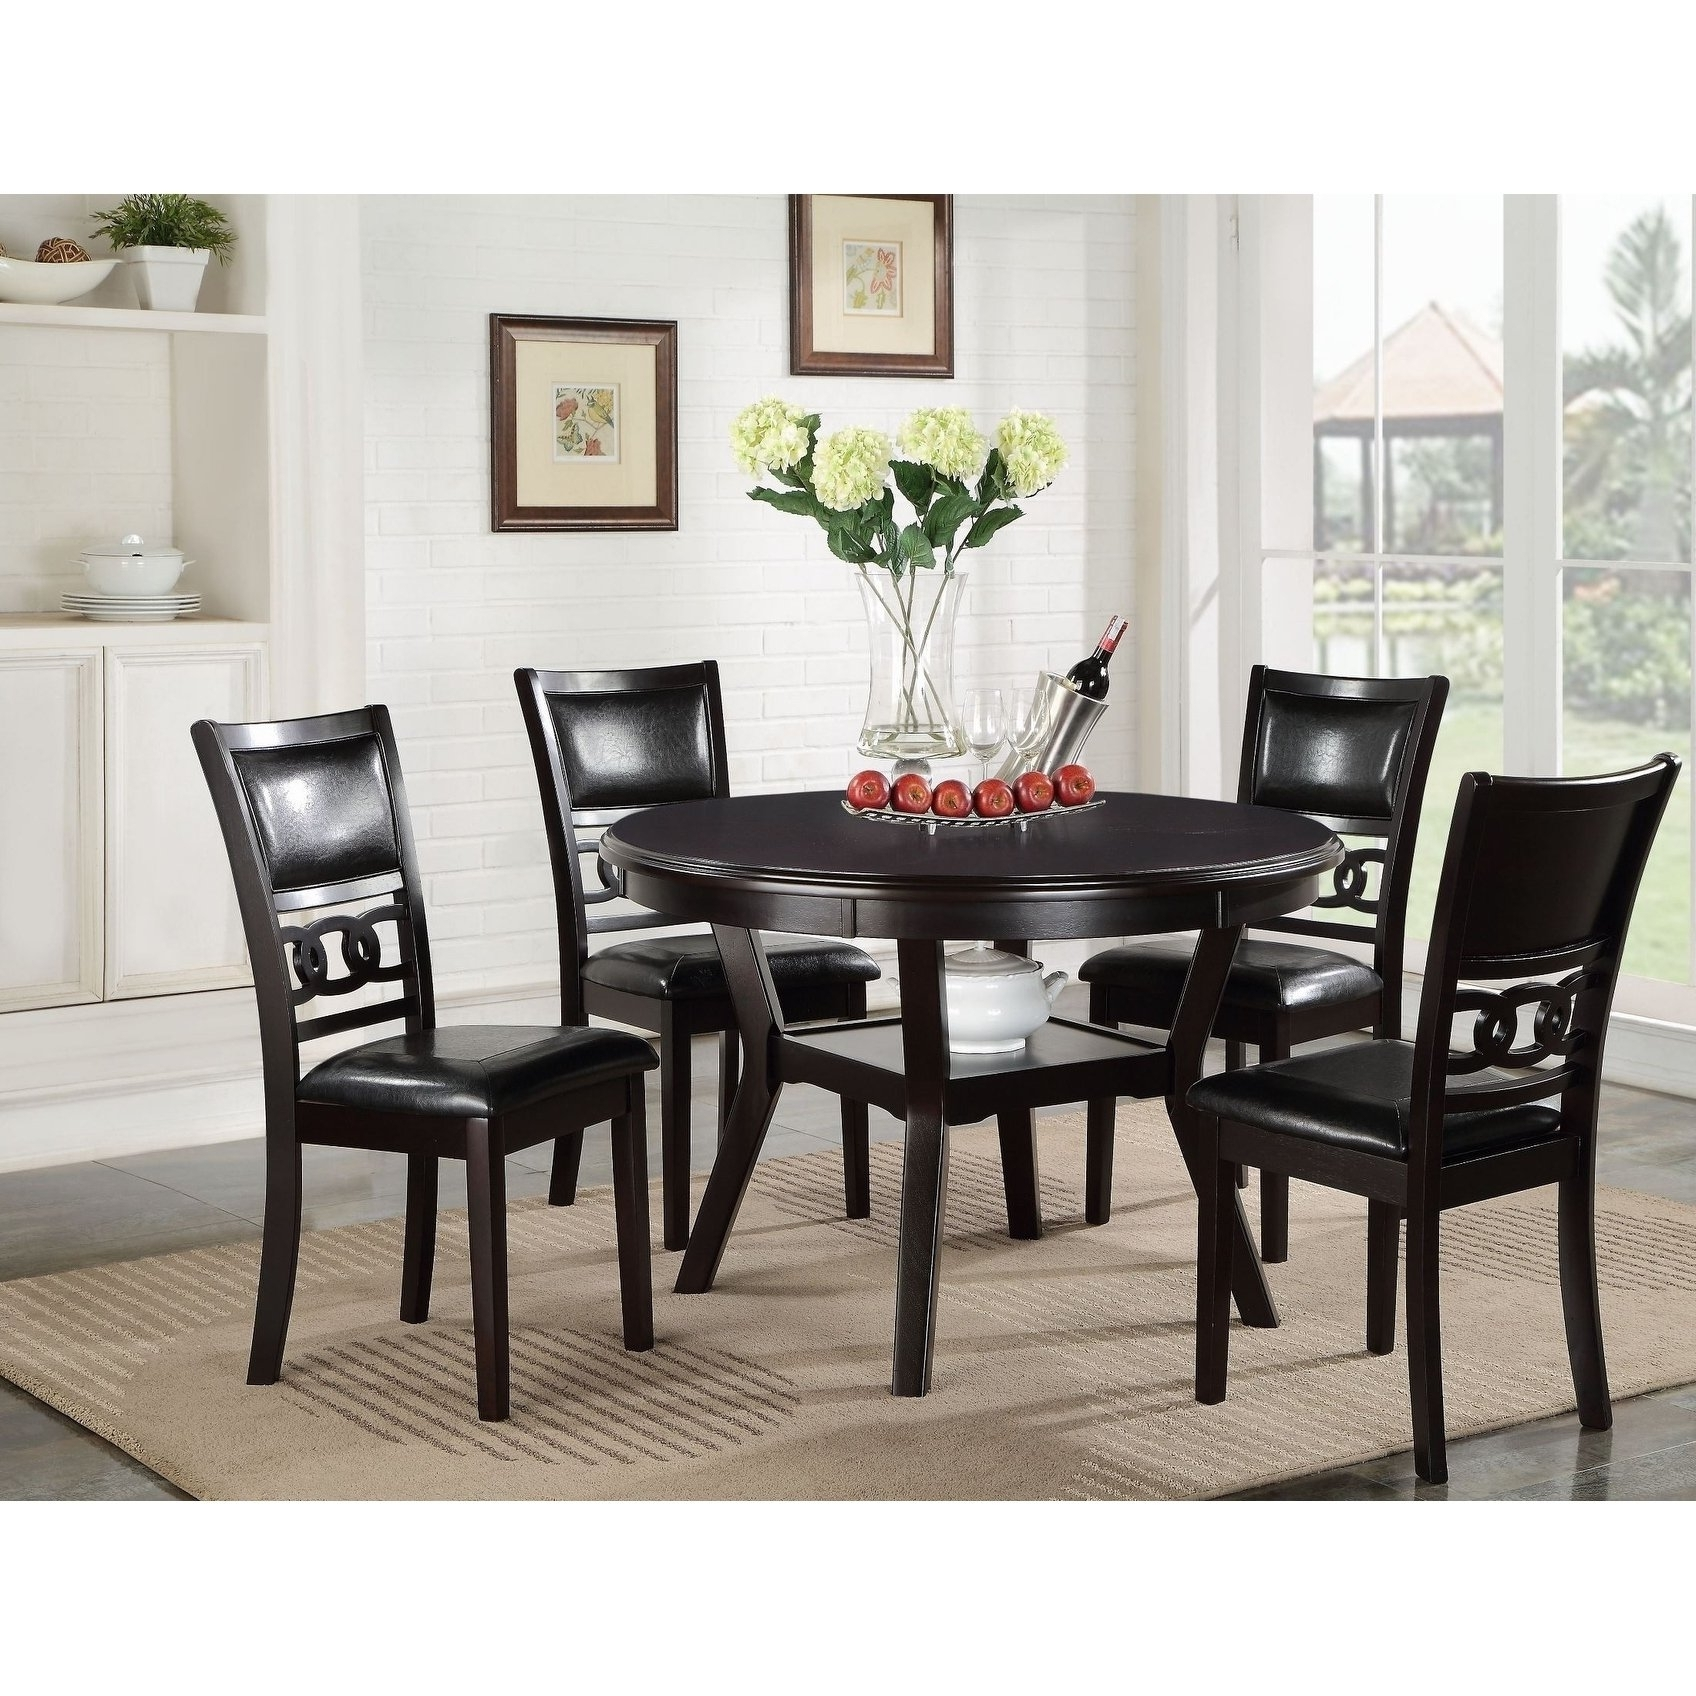 Shop Gia Ebony Standard Height Round Table 5 Piece Dining Set – Free Throughout Newest Jaxon 5 Piece Round Dining Sets With Upholstered Chairs (View 19 of 25)